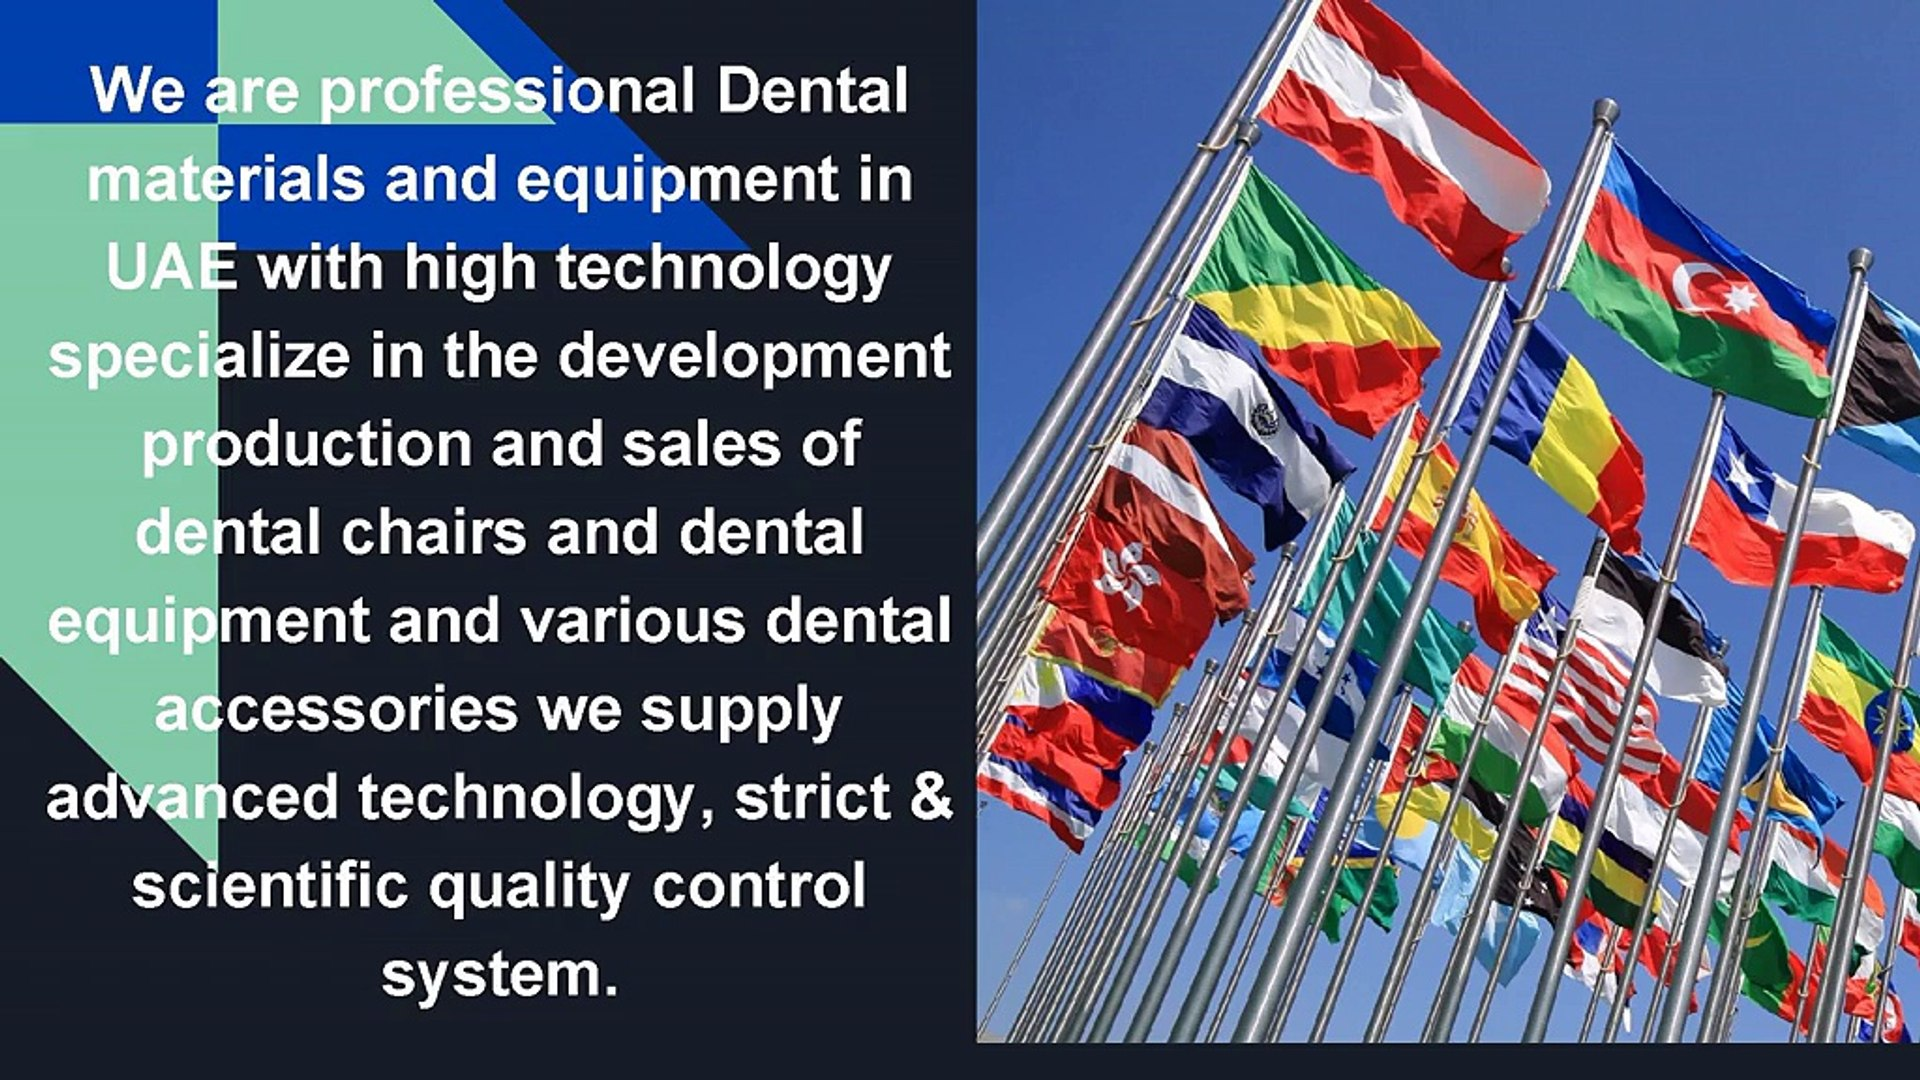 Dental products suppliers